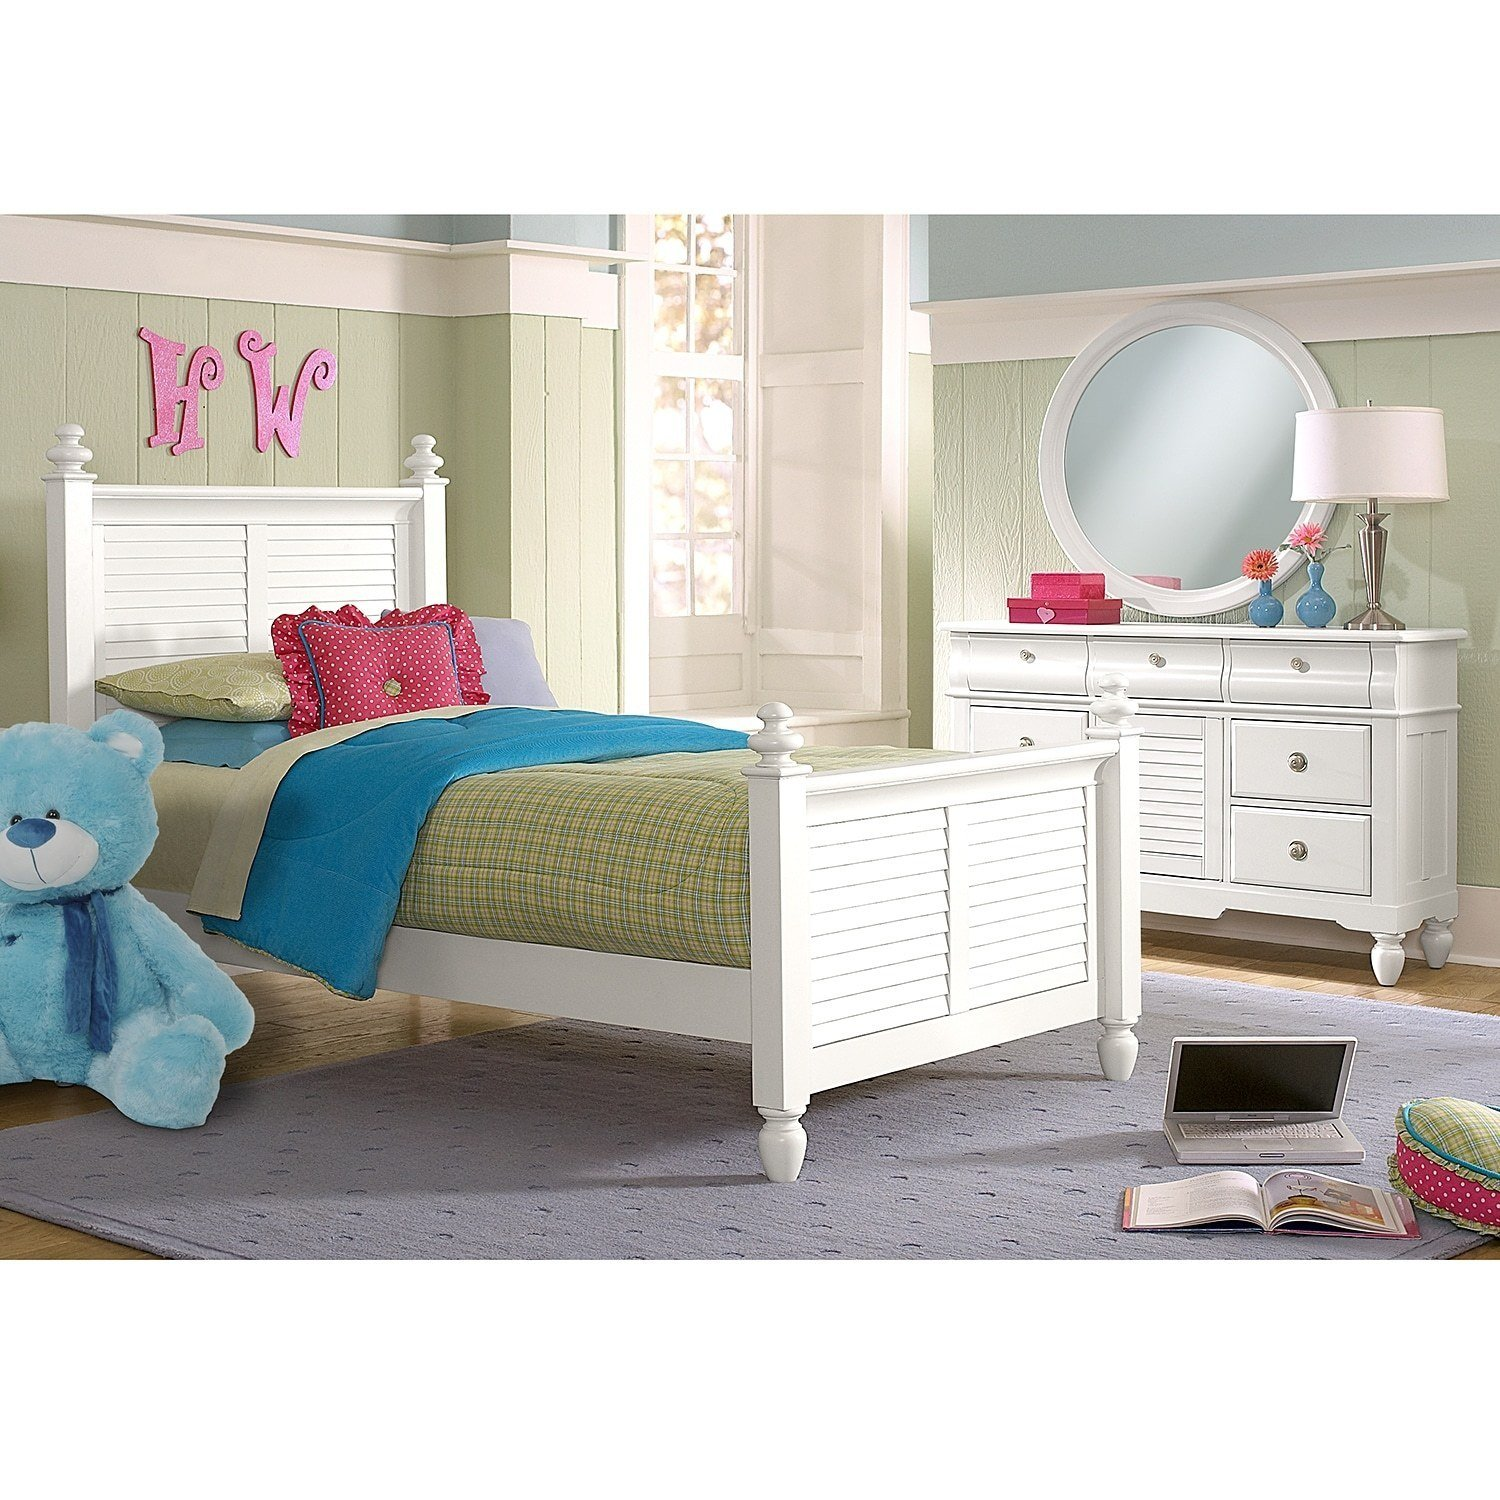 Best Seaside 6 Piece Full Bedroom Set With Trundle White American Signature Furniture With Pictures